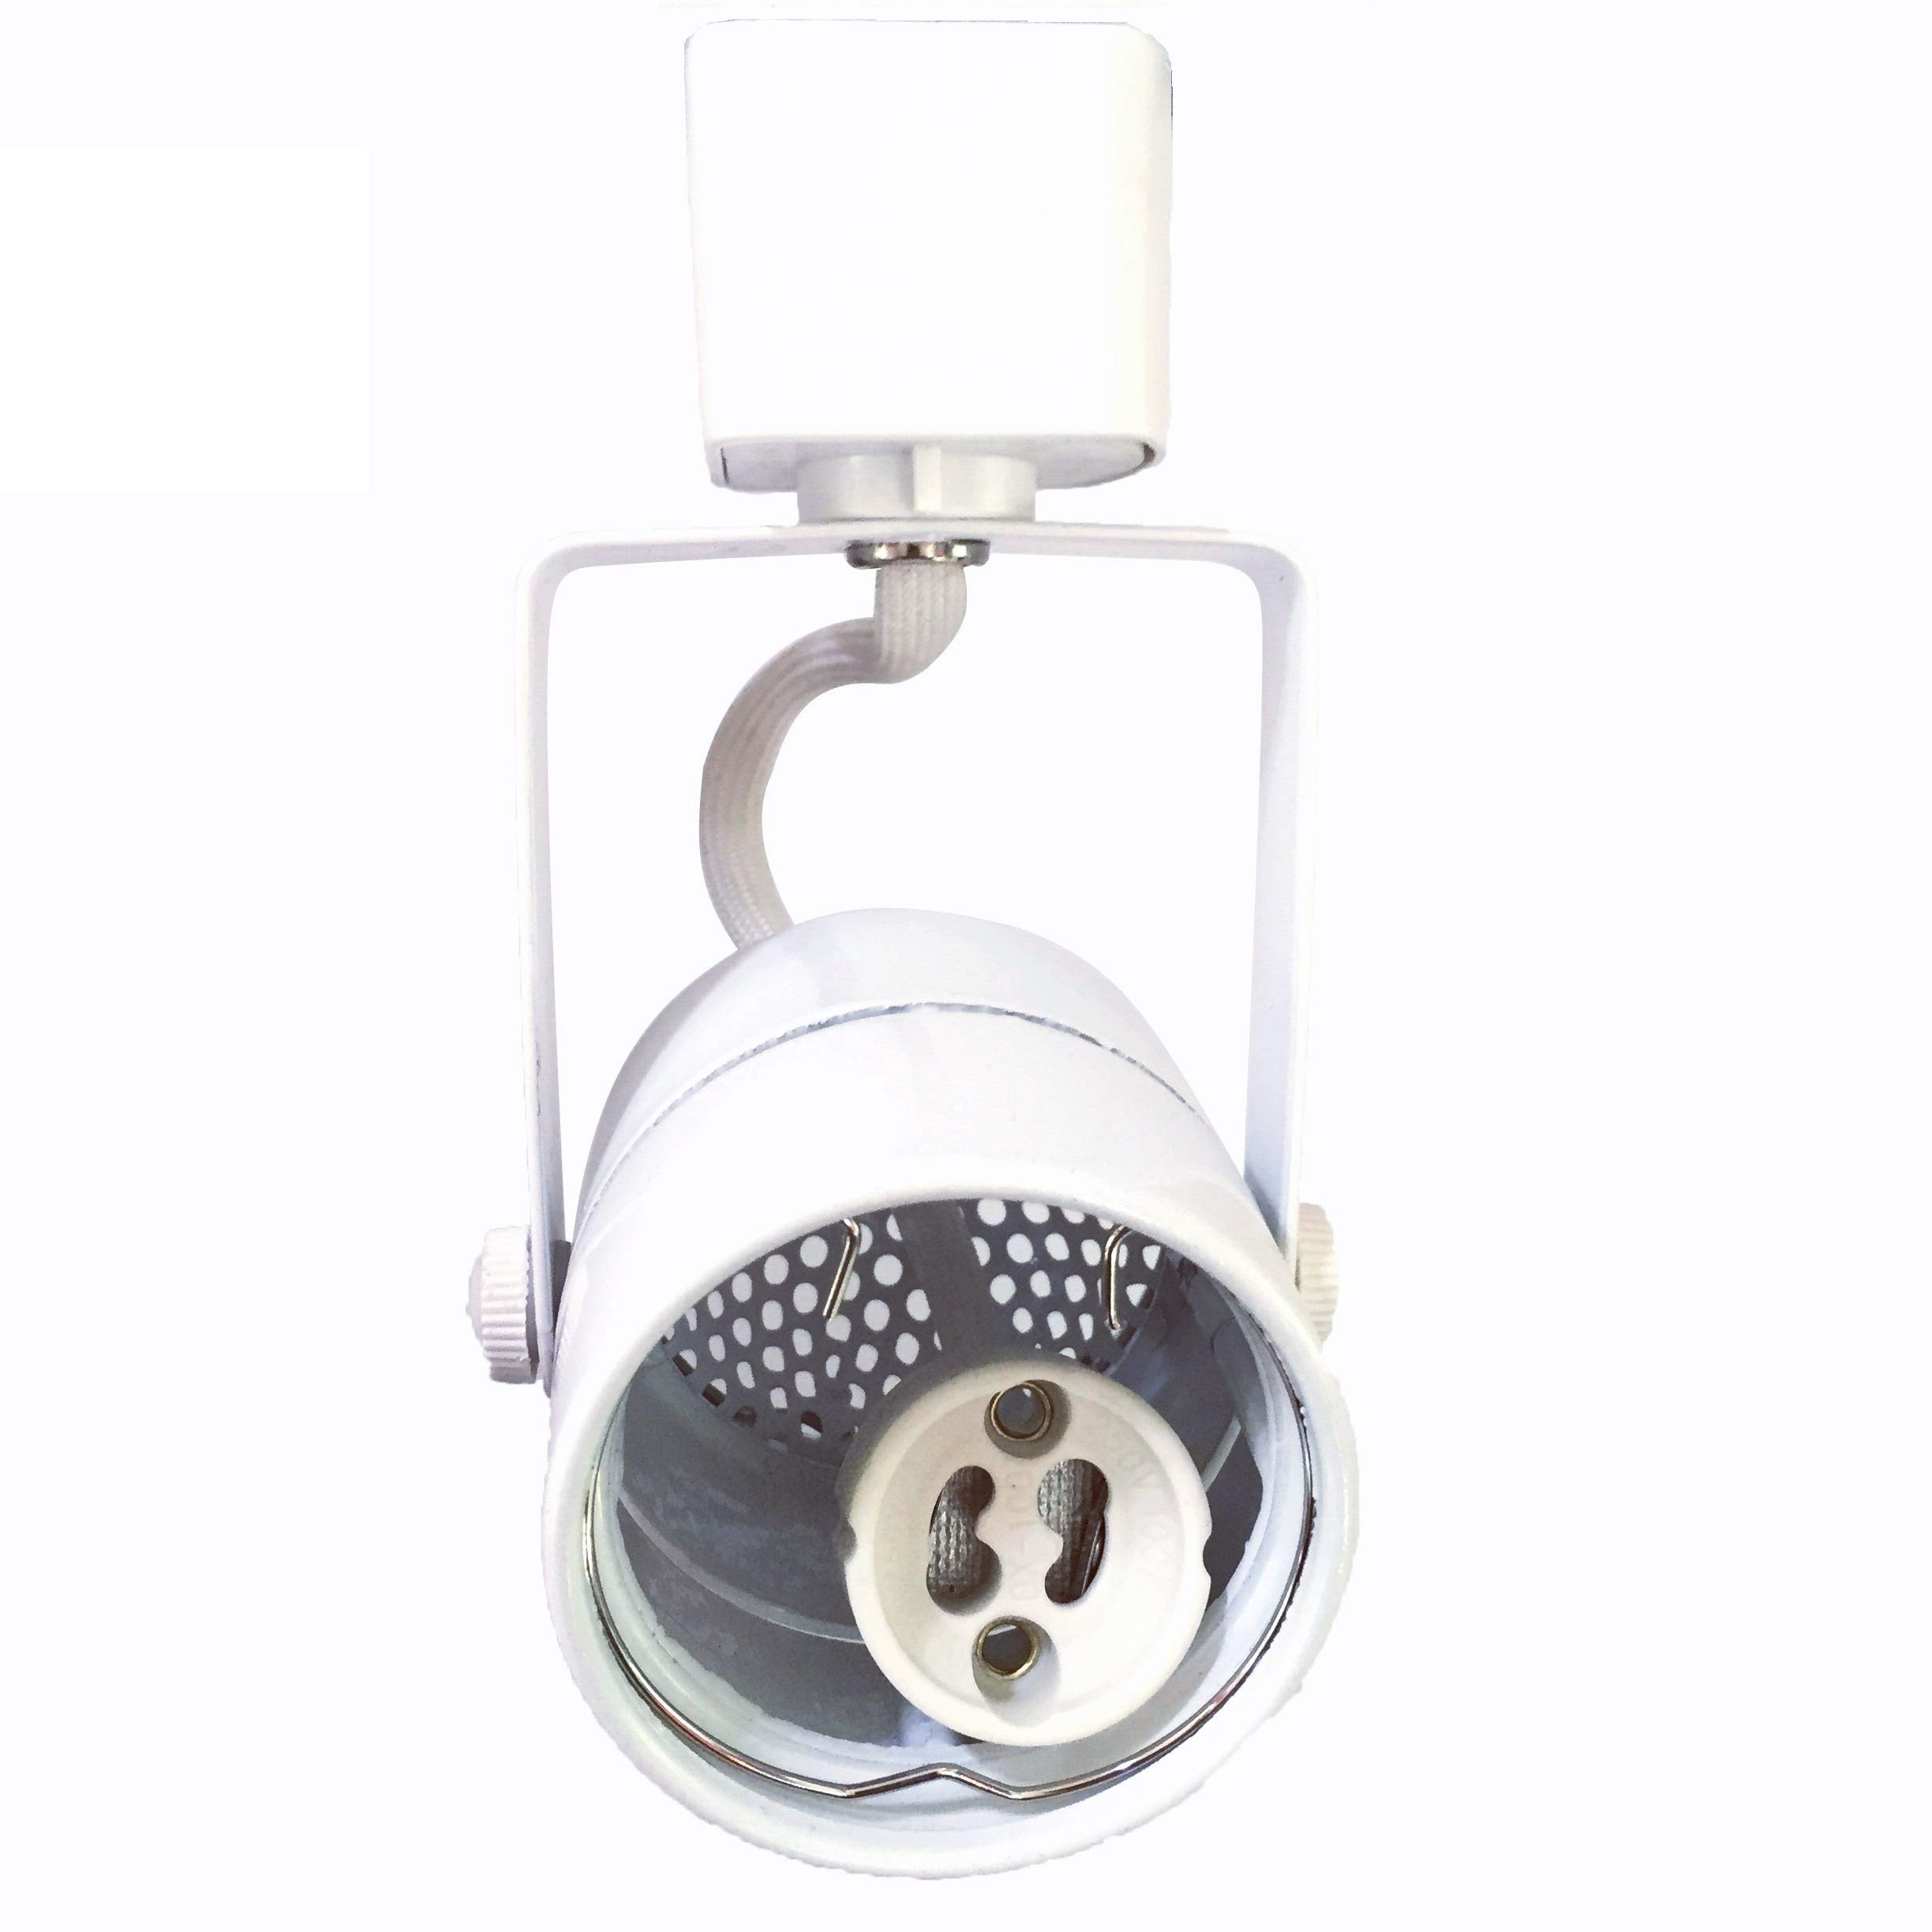 KING SHA White GU10 Line Voltage Track Lighting Head (Bulb NOT Included) Compatible H Type 3-Wire Single Circuit Track Systems,ETL-Listed